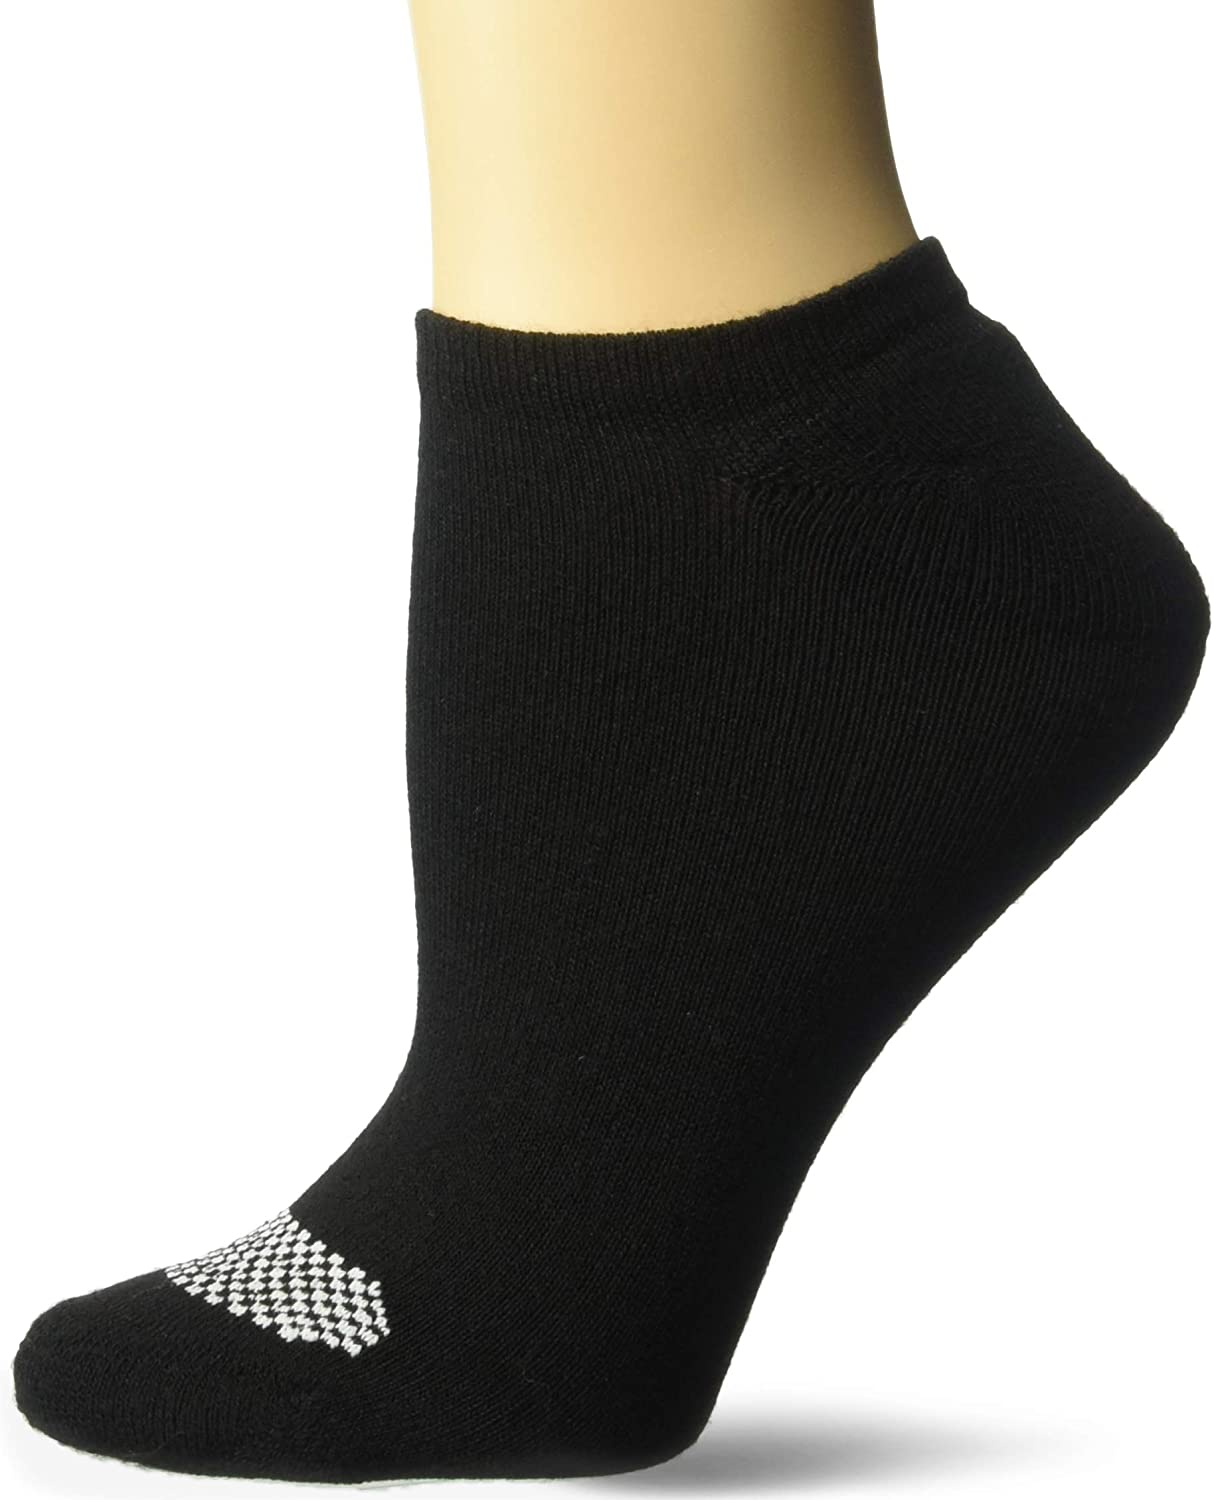 Hanes womens Cool Comfort Breathable Ventilation No Show Socks, 6-pair Pack